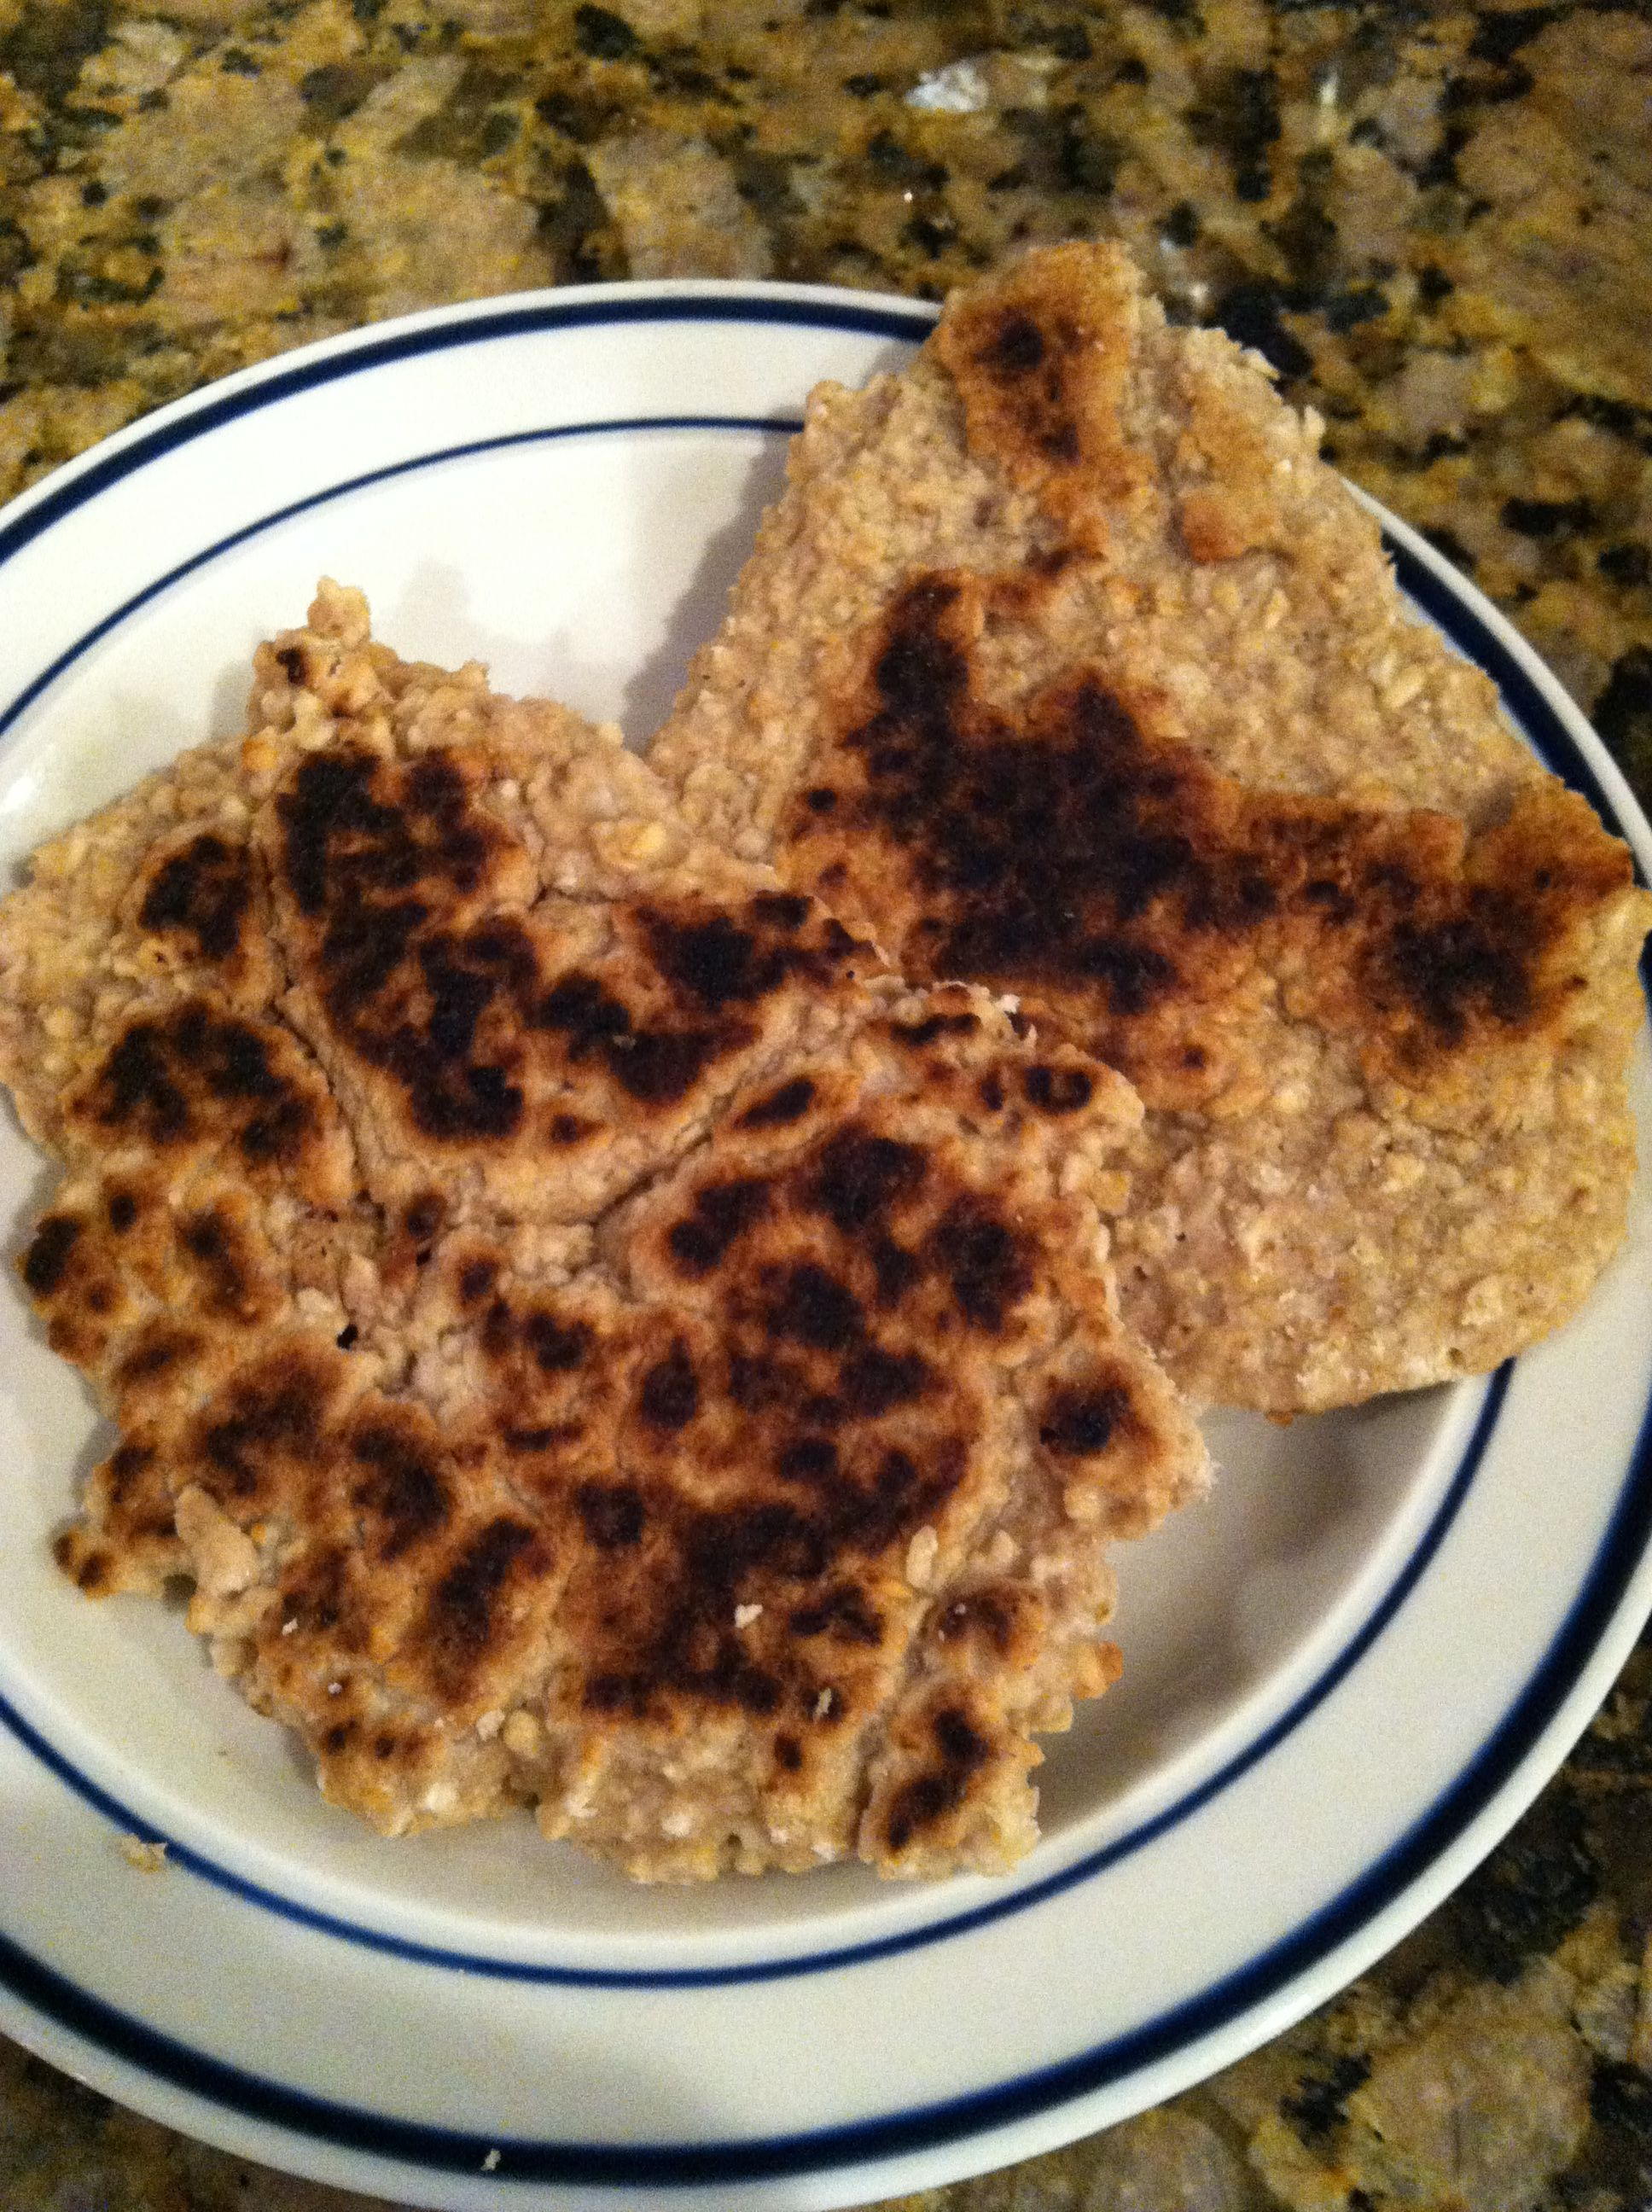 Banana Nut Oatcakes from Change Your Brain: This is an okay breakfast recipe.  Turned out a little chunky or hard, not like a real pancake which is soft and fluffy.  This has a hockey puck feel to it.  I prefer the Maple Pecan Breakfast Bars.